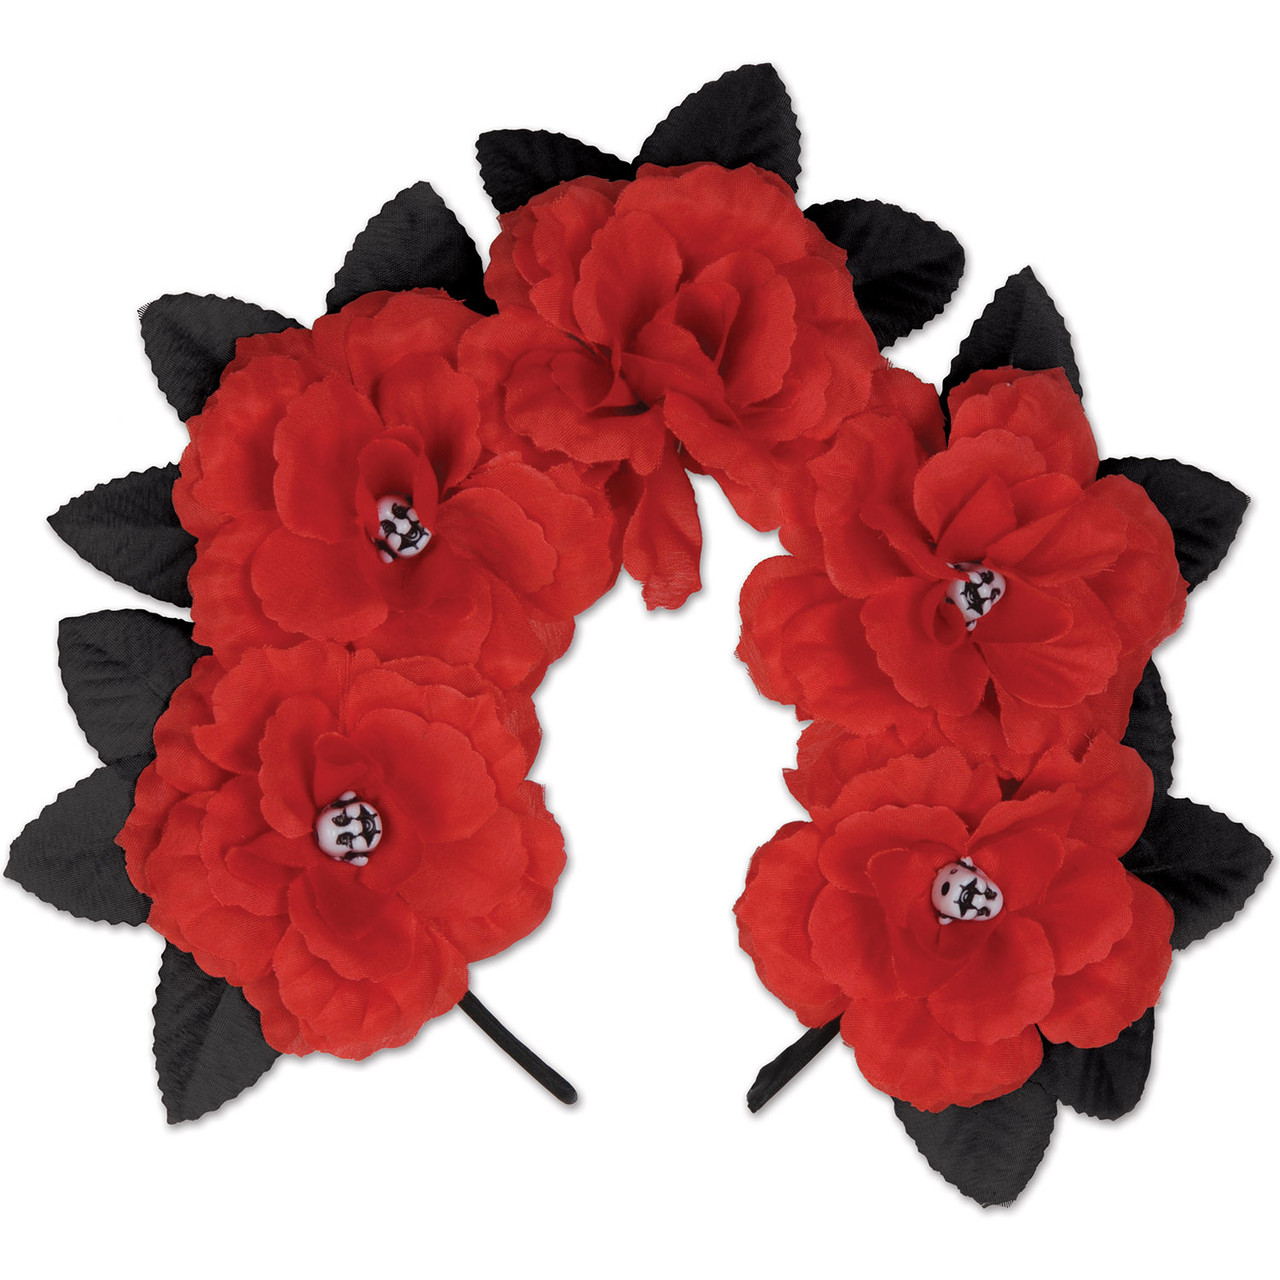 club pack of 12 day of the dead red floral halloween headbands